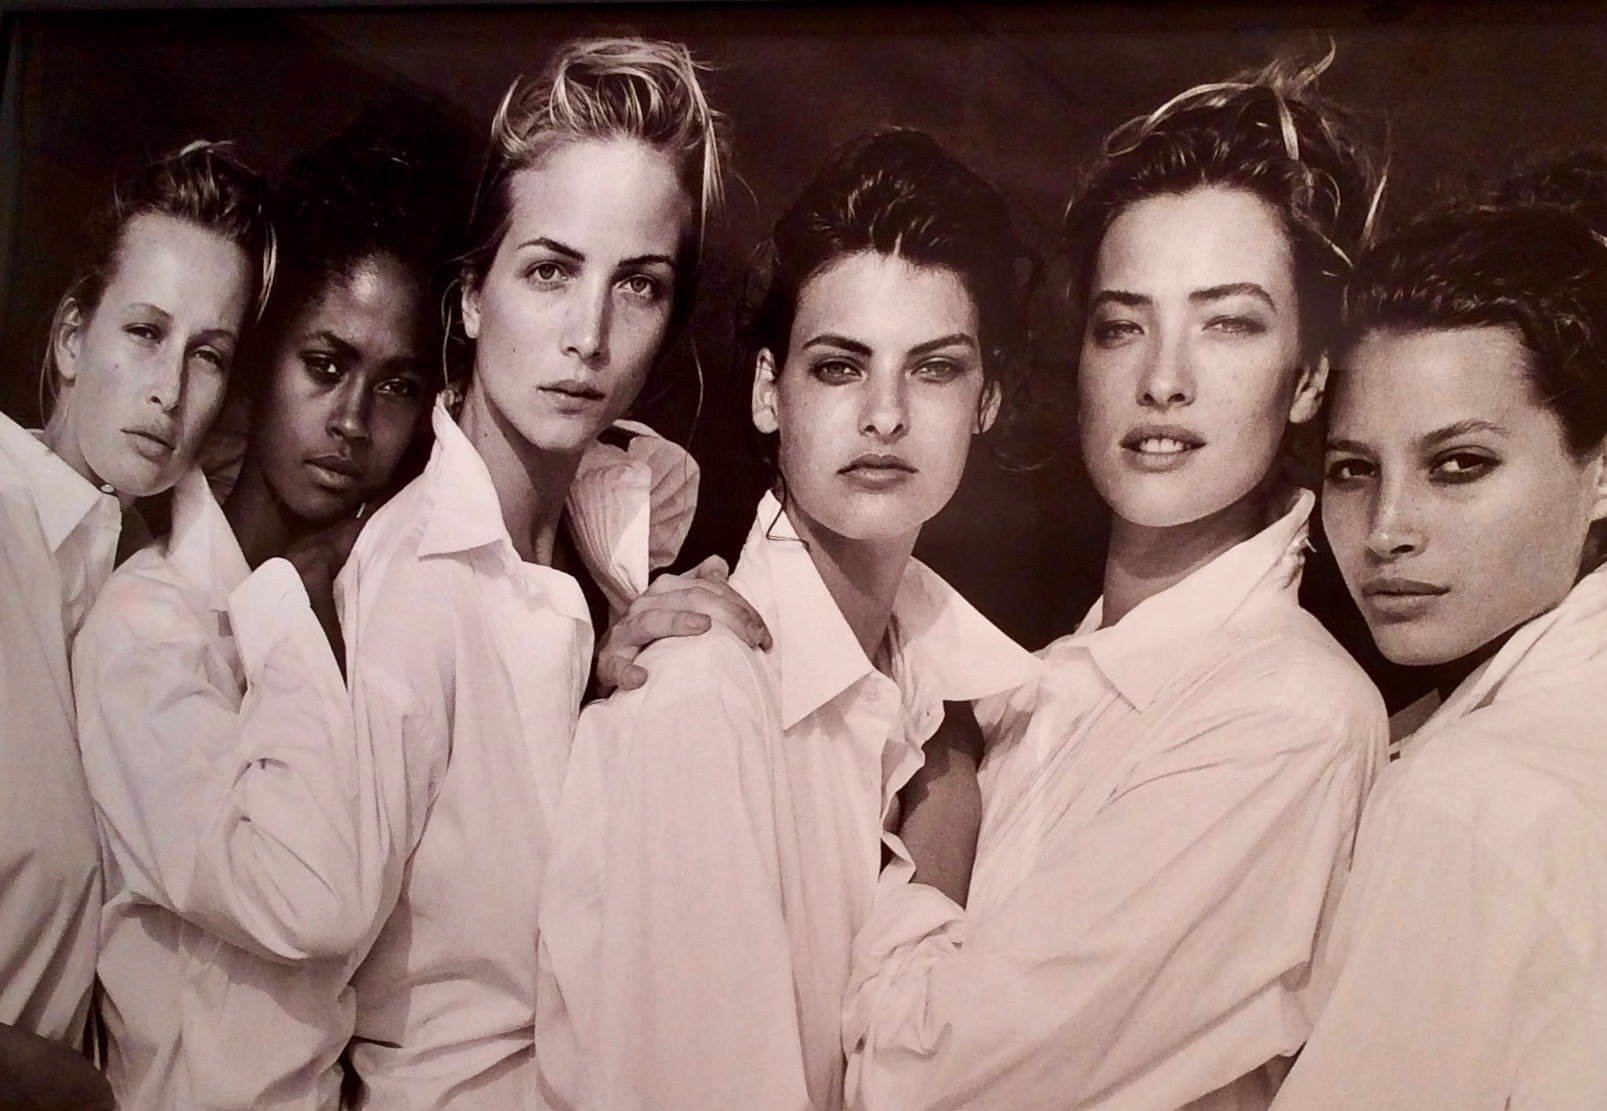 Birth of the supermodels: (from left) Estelle Lefébure, Karen Alexander, Rachel Williams, Linda Evangelista, Tatjana Patitz and Christy Turlington, Malibu, 1988. Photograph: Peter Lindbergh